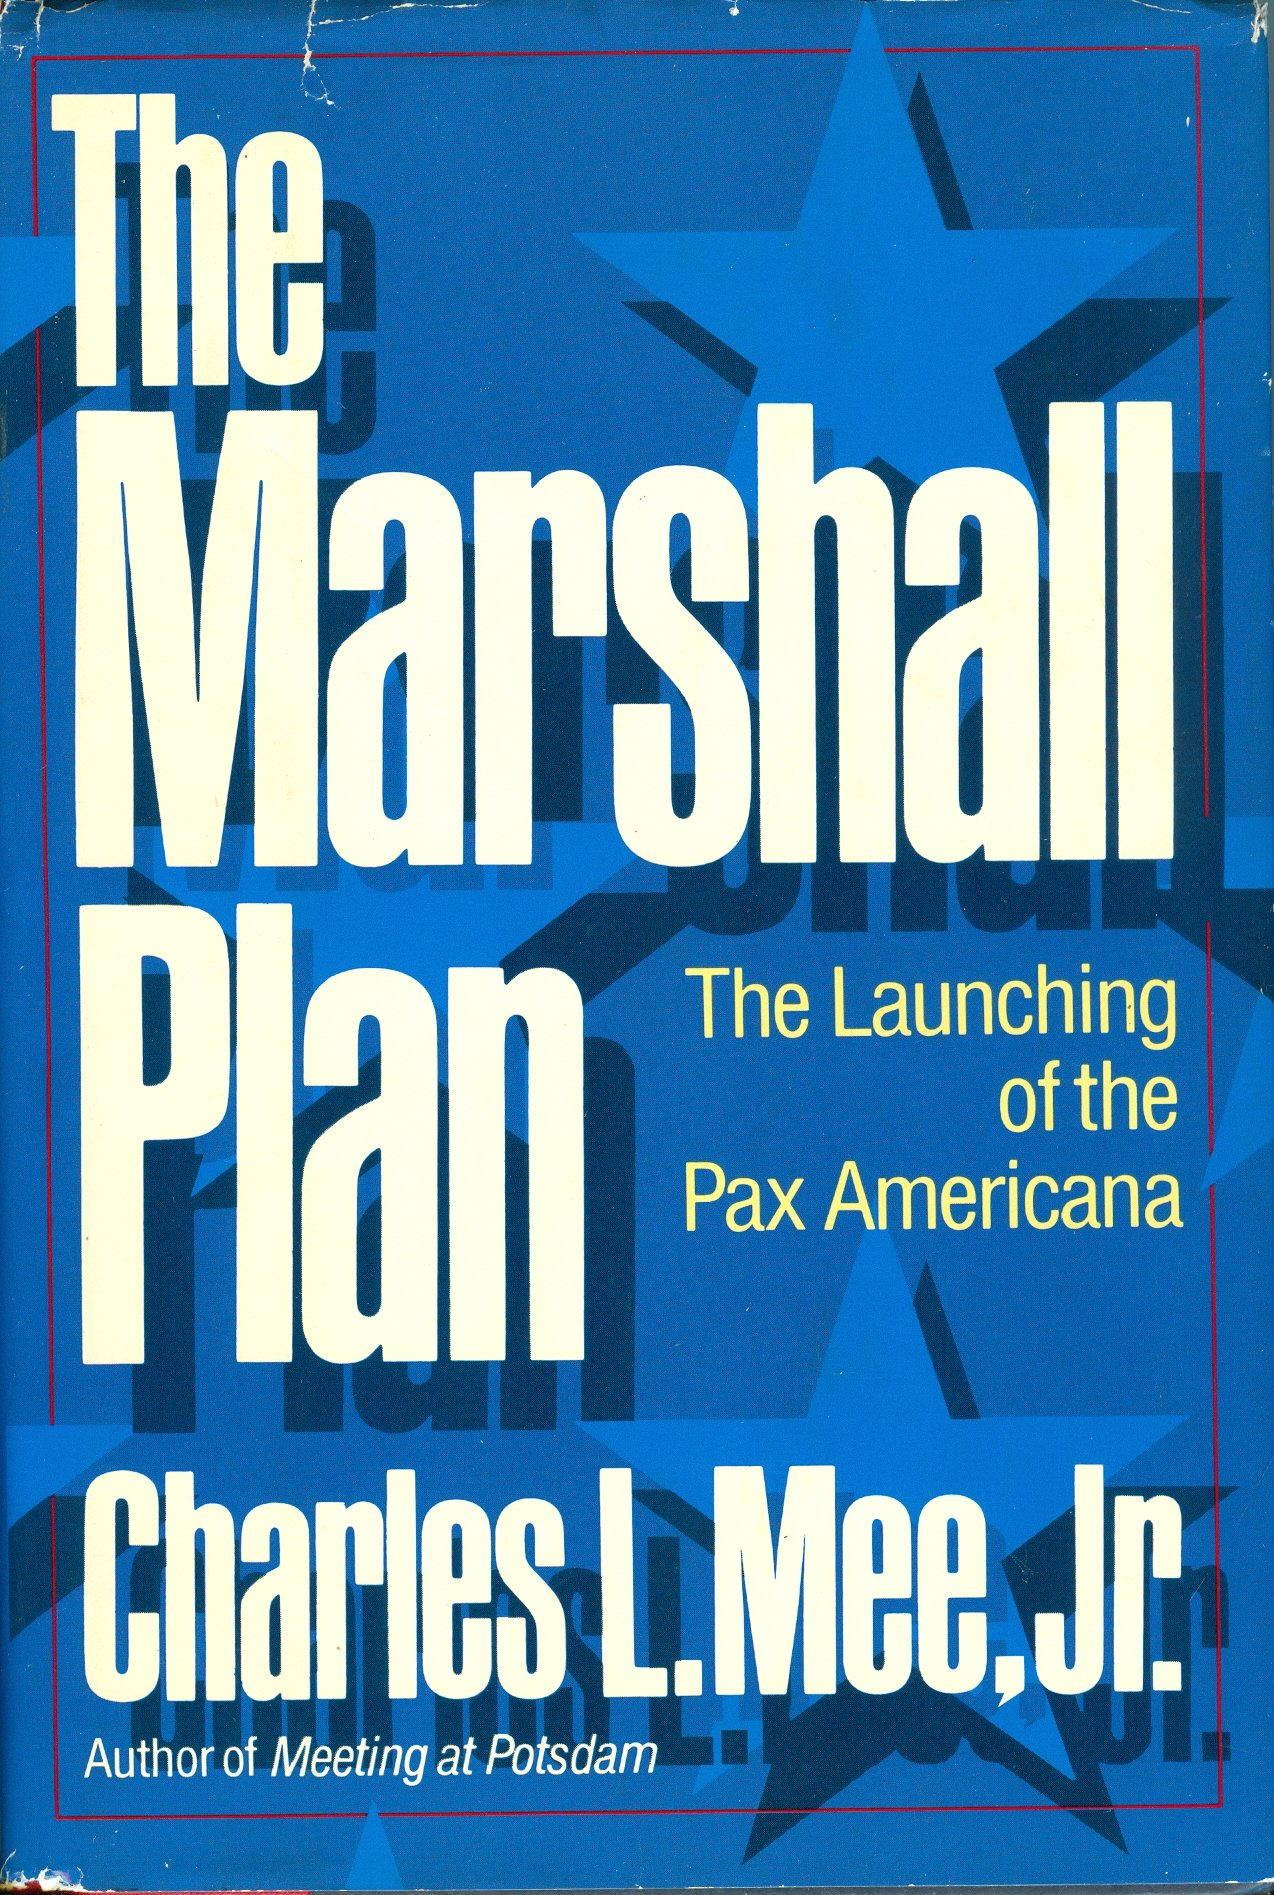 The Marshall Plan: The Launching of the Pax Americana: Charles L. Mee Jr.: 9780671421496: Amazon.com: Books